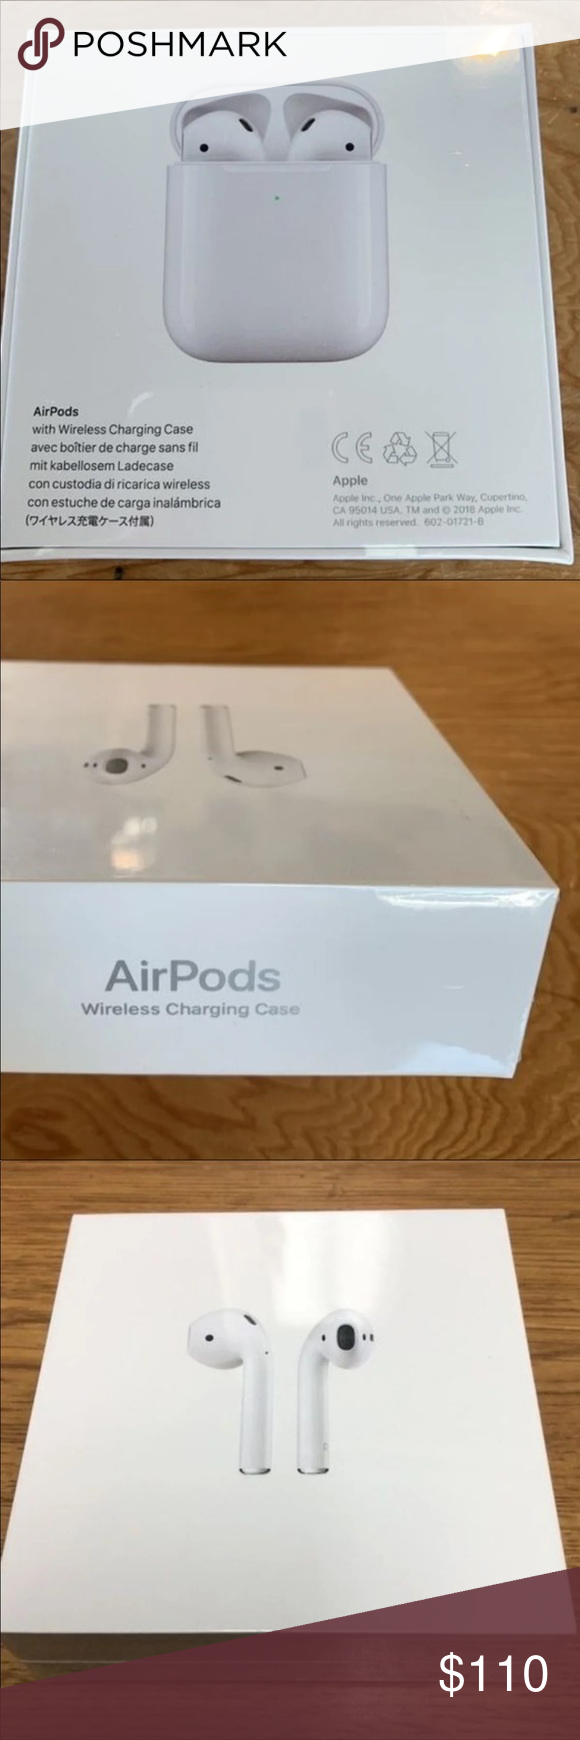 Apple Airpods 2 W Wireless Charge Case Airpods 2nd Generation